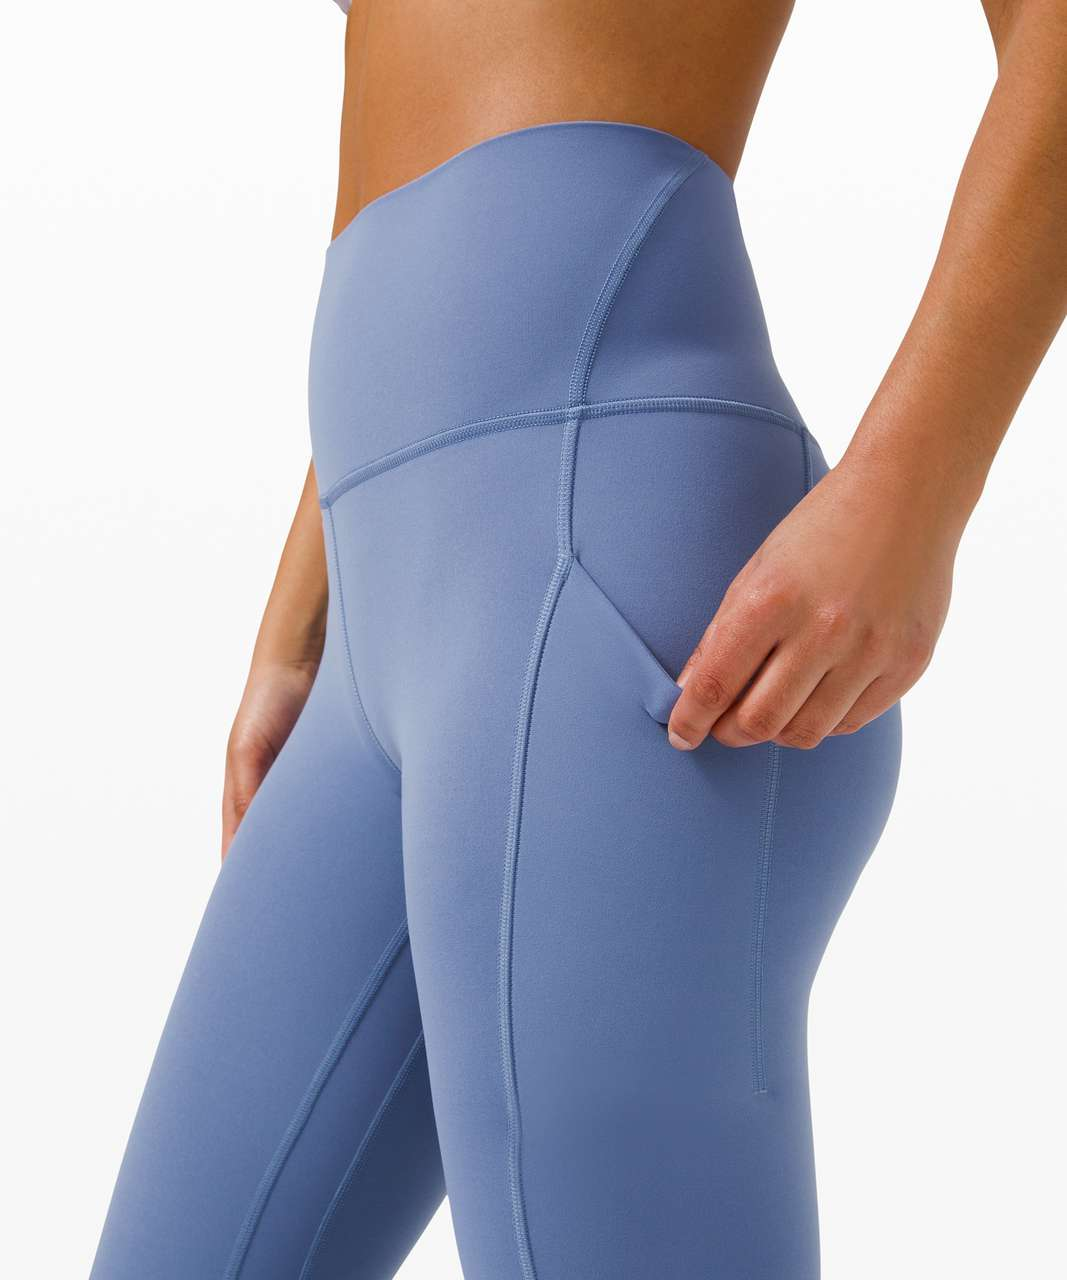 "Lululemon Align High Rise Pant with Pockets 25"" - Water Drop"